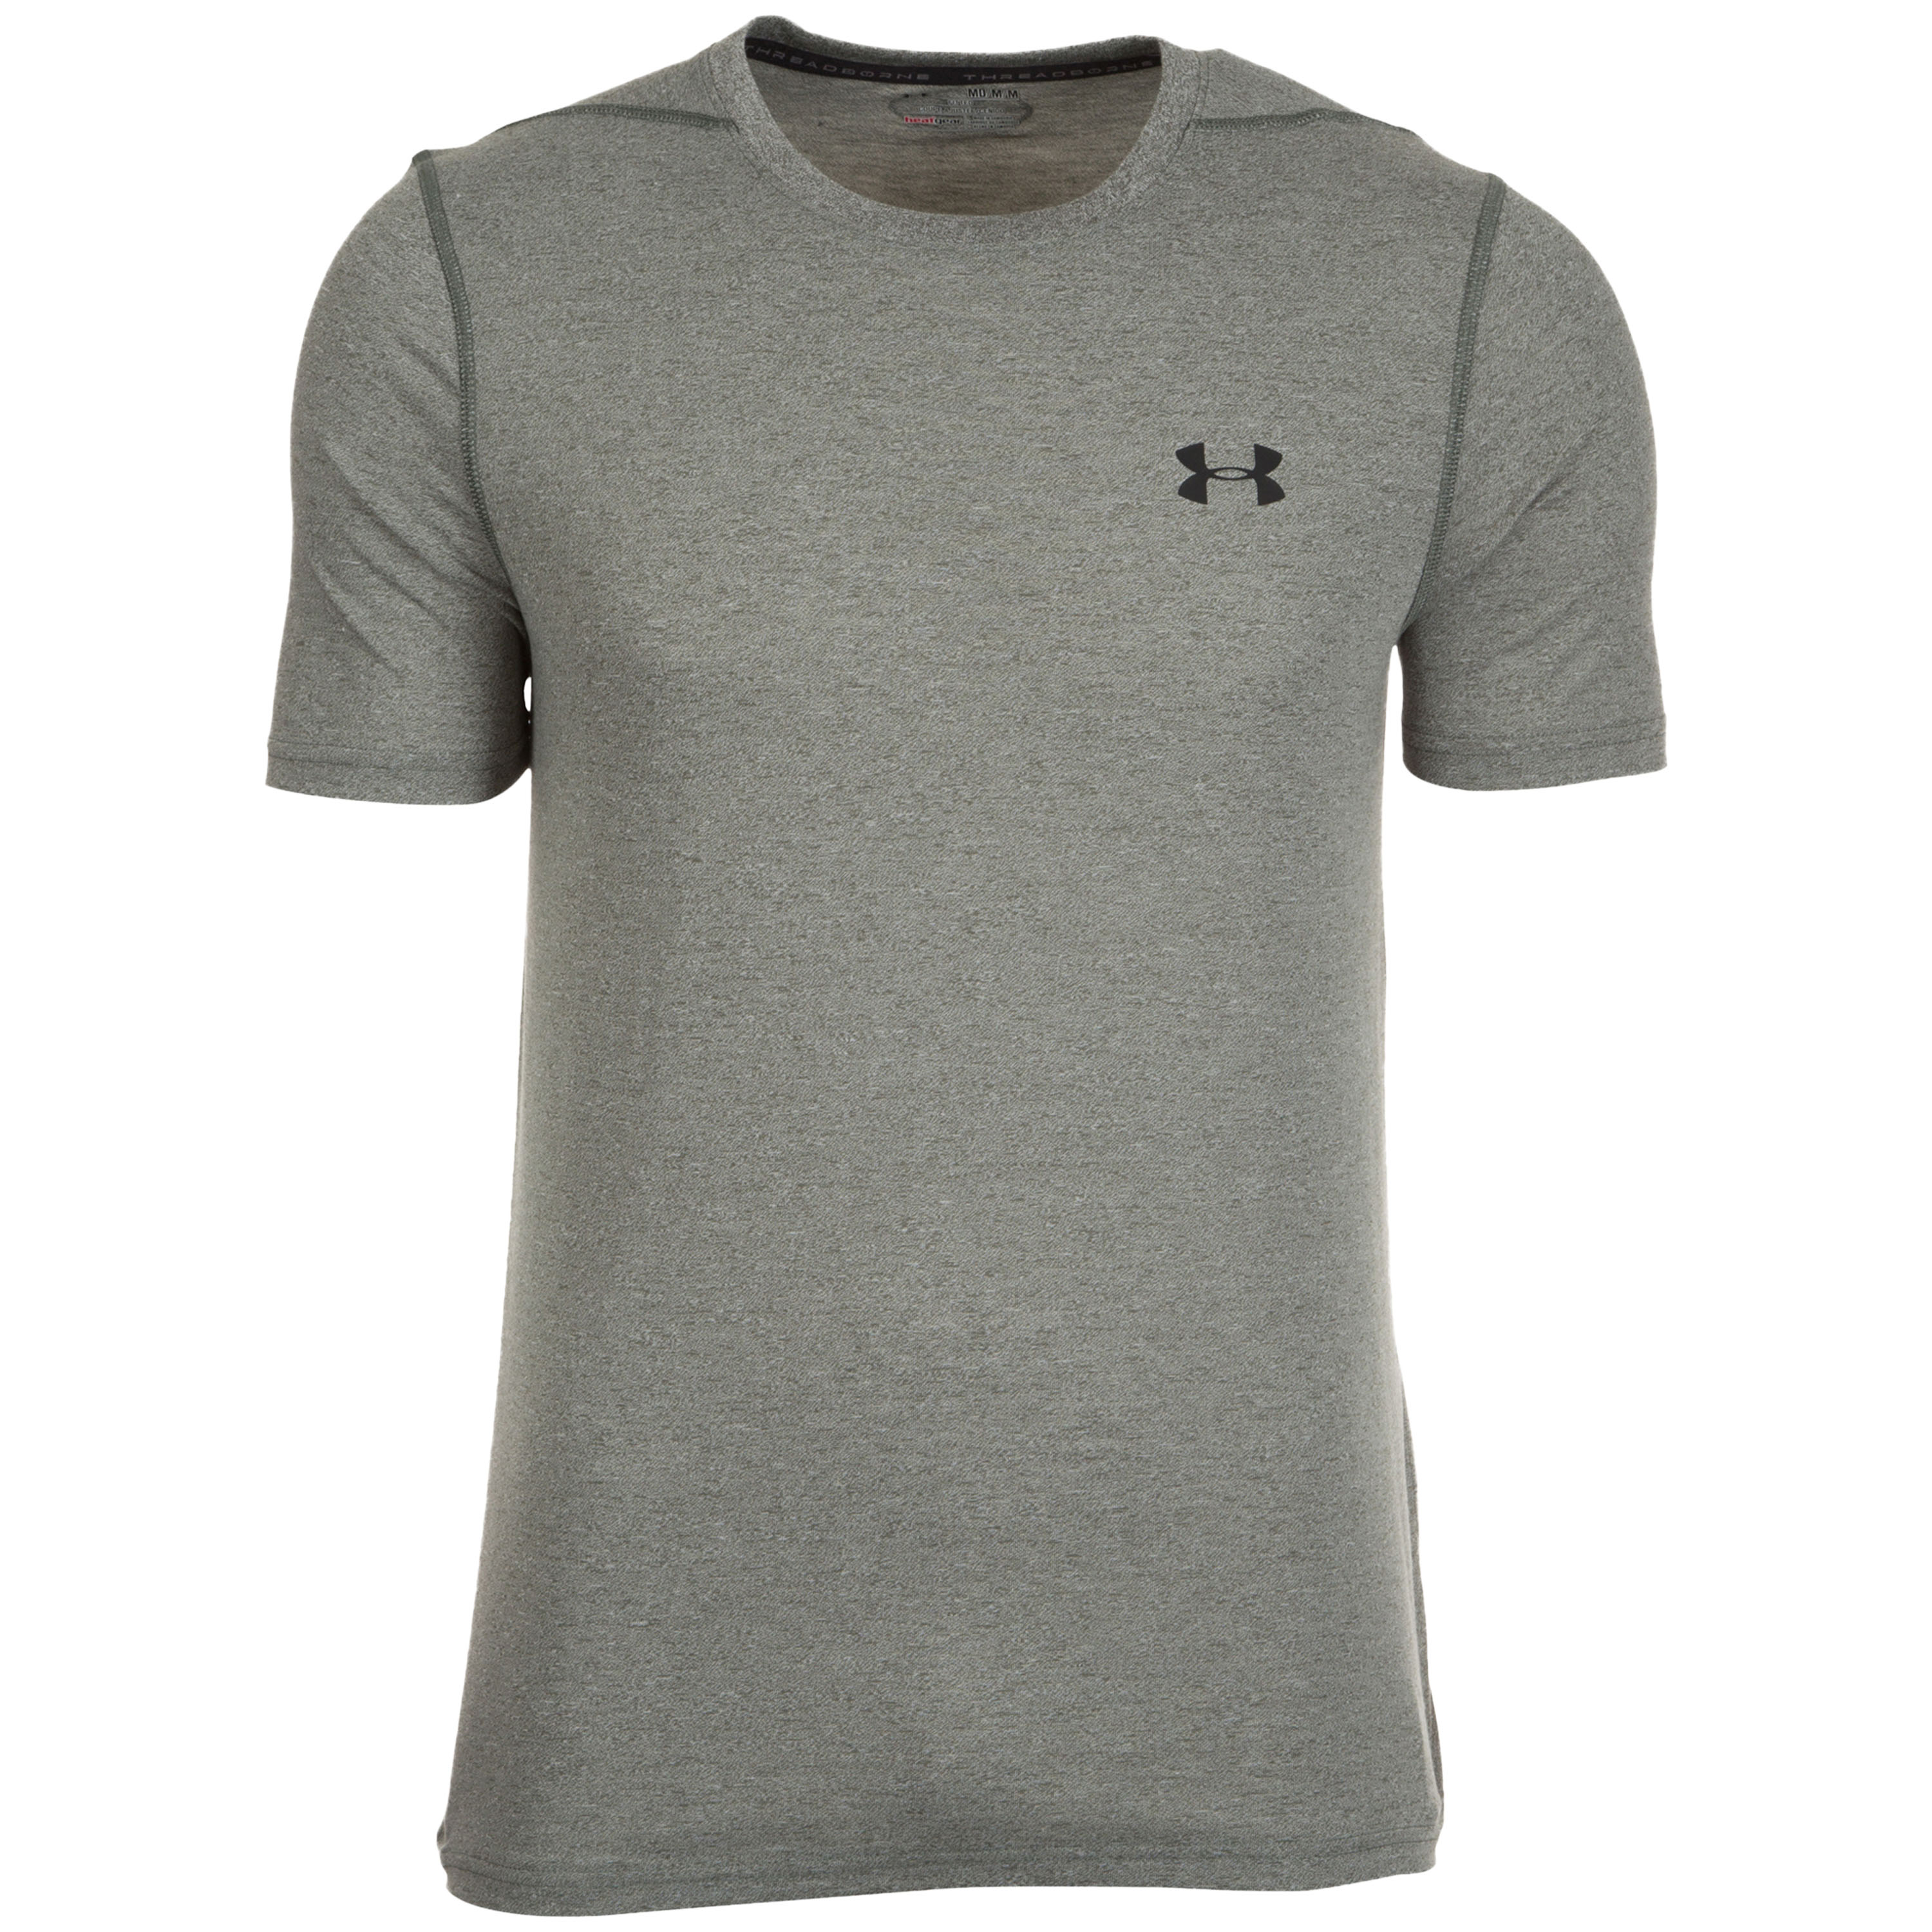 Under Armour Fitness Shirt Threadborne Fitted grau oliv